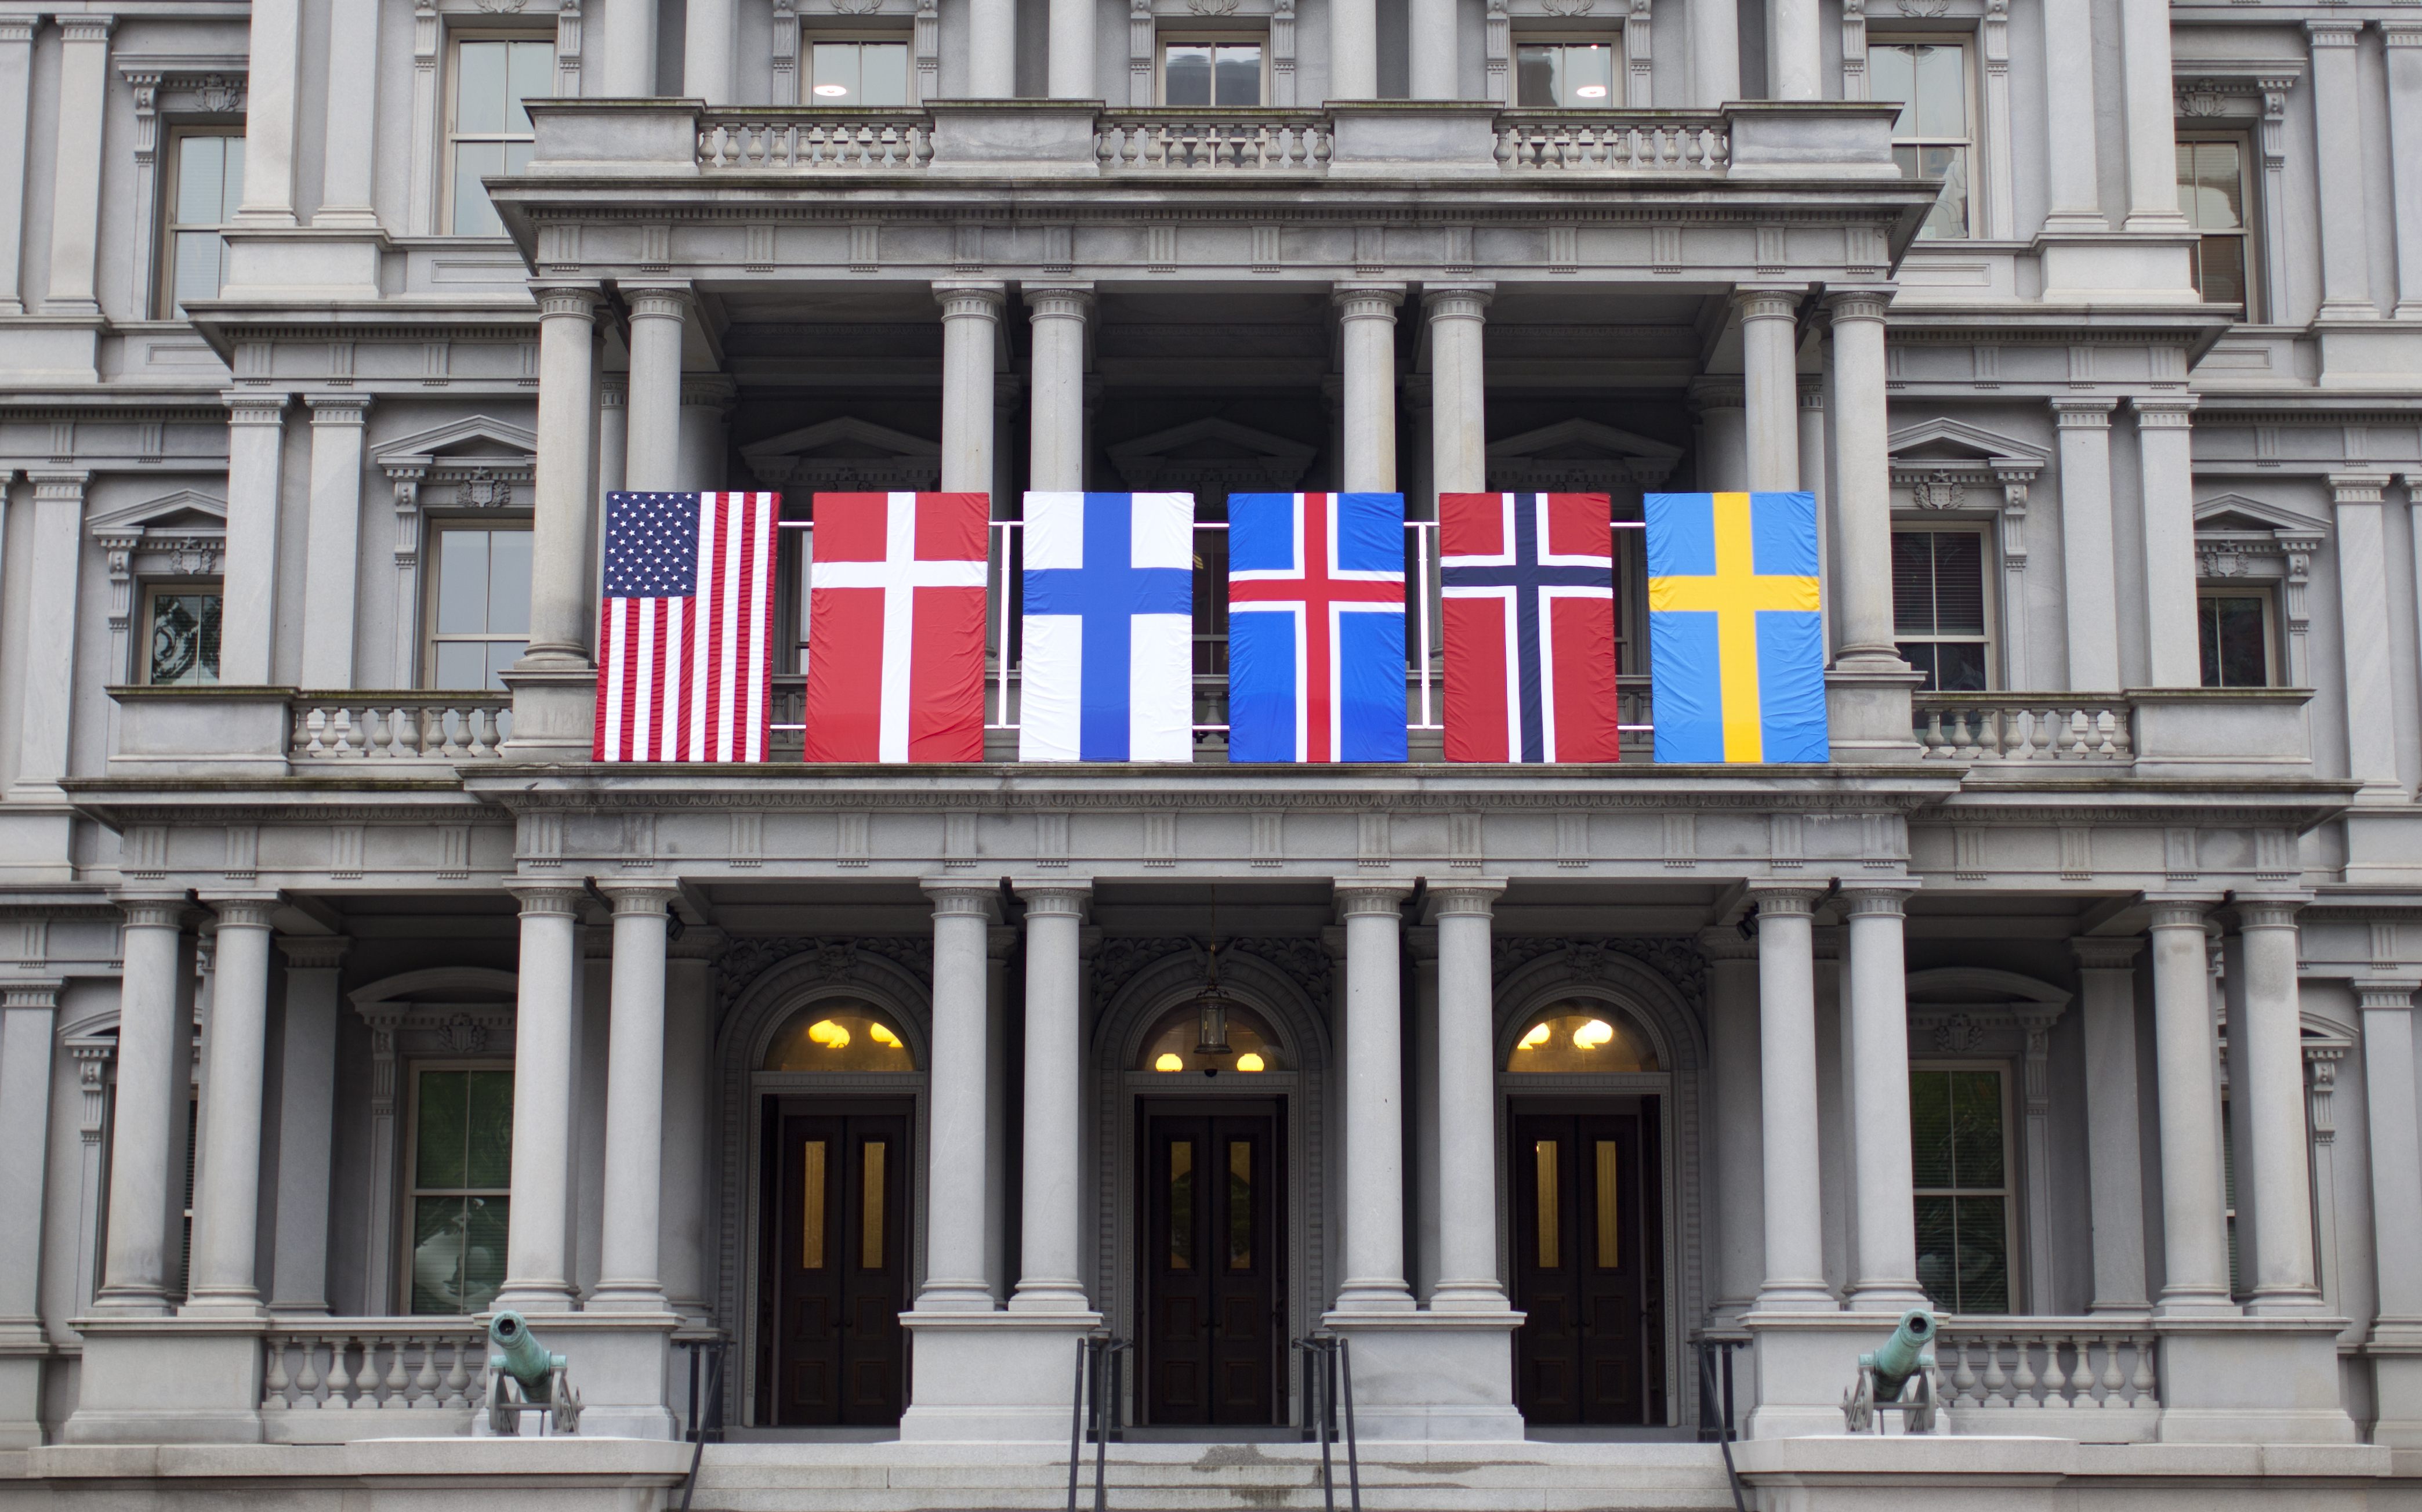 In preparation for the visit of Nordic leaders to the White House, flags are displayed on the Eisenhower Executive Office Building on the White House complex in Washington, May 12, 2016.